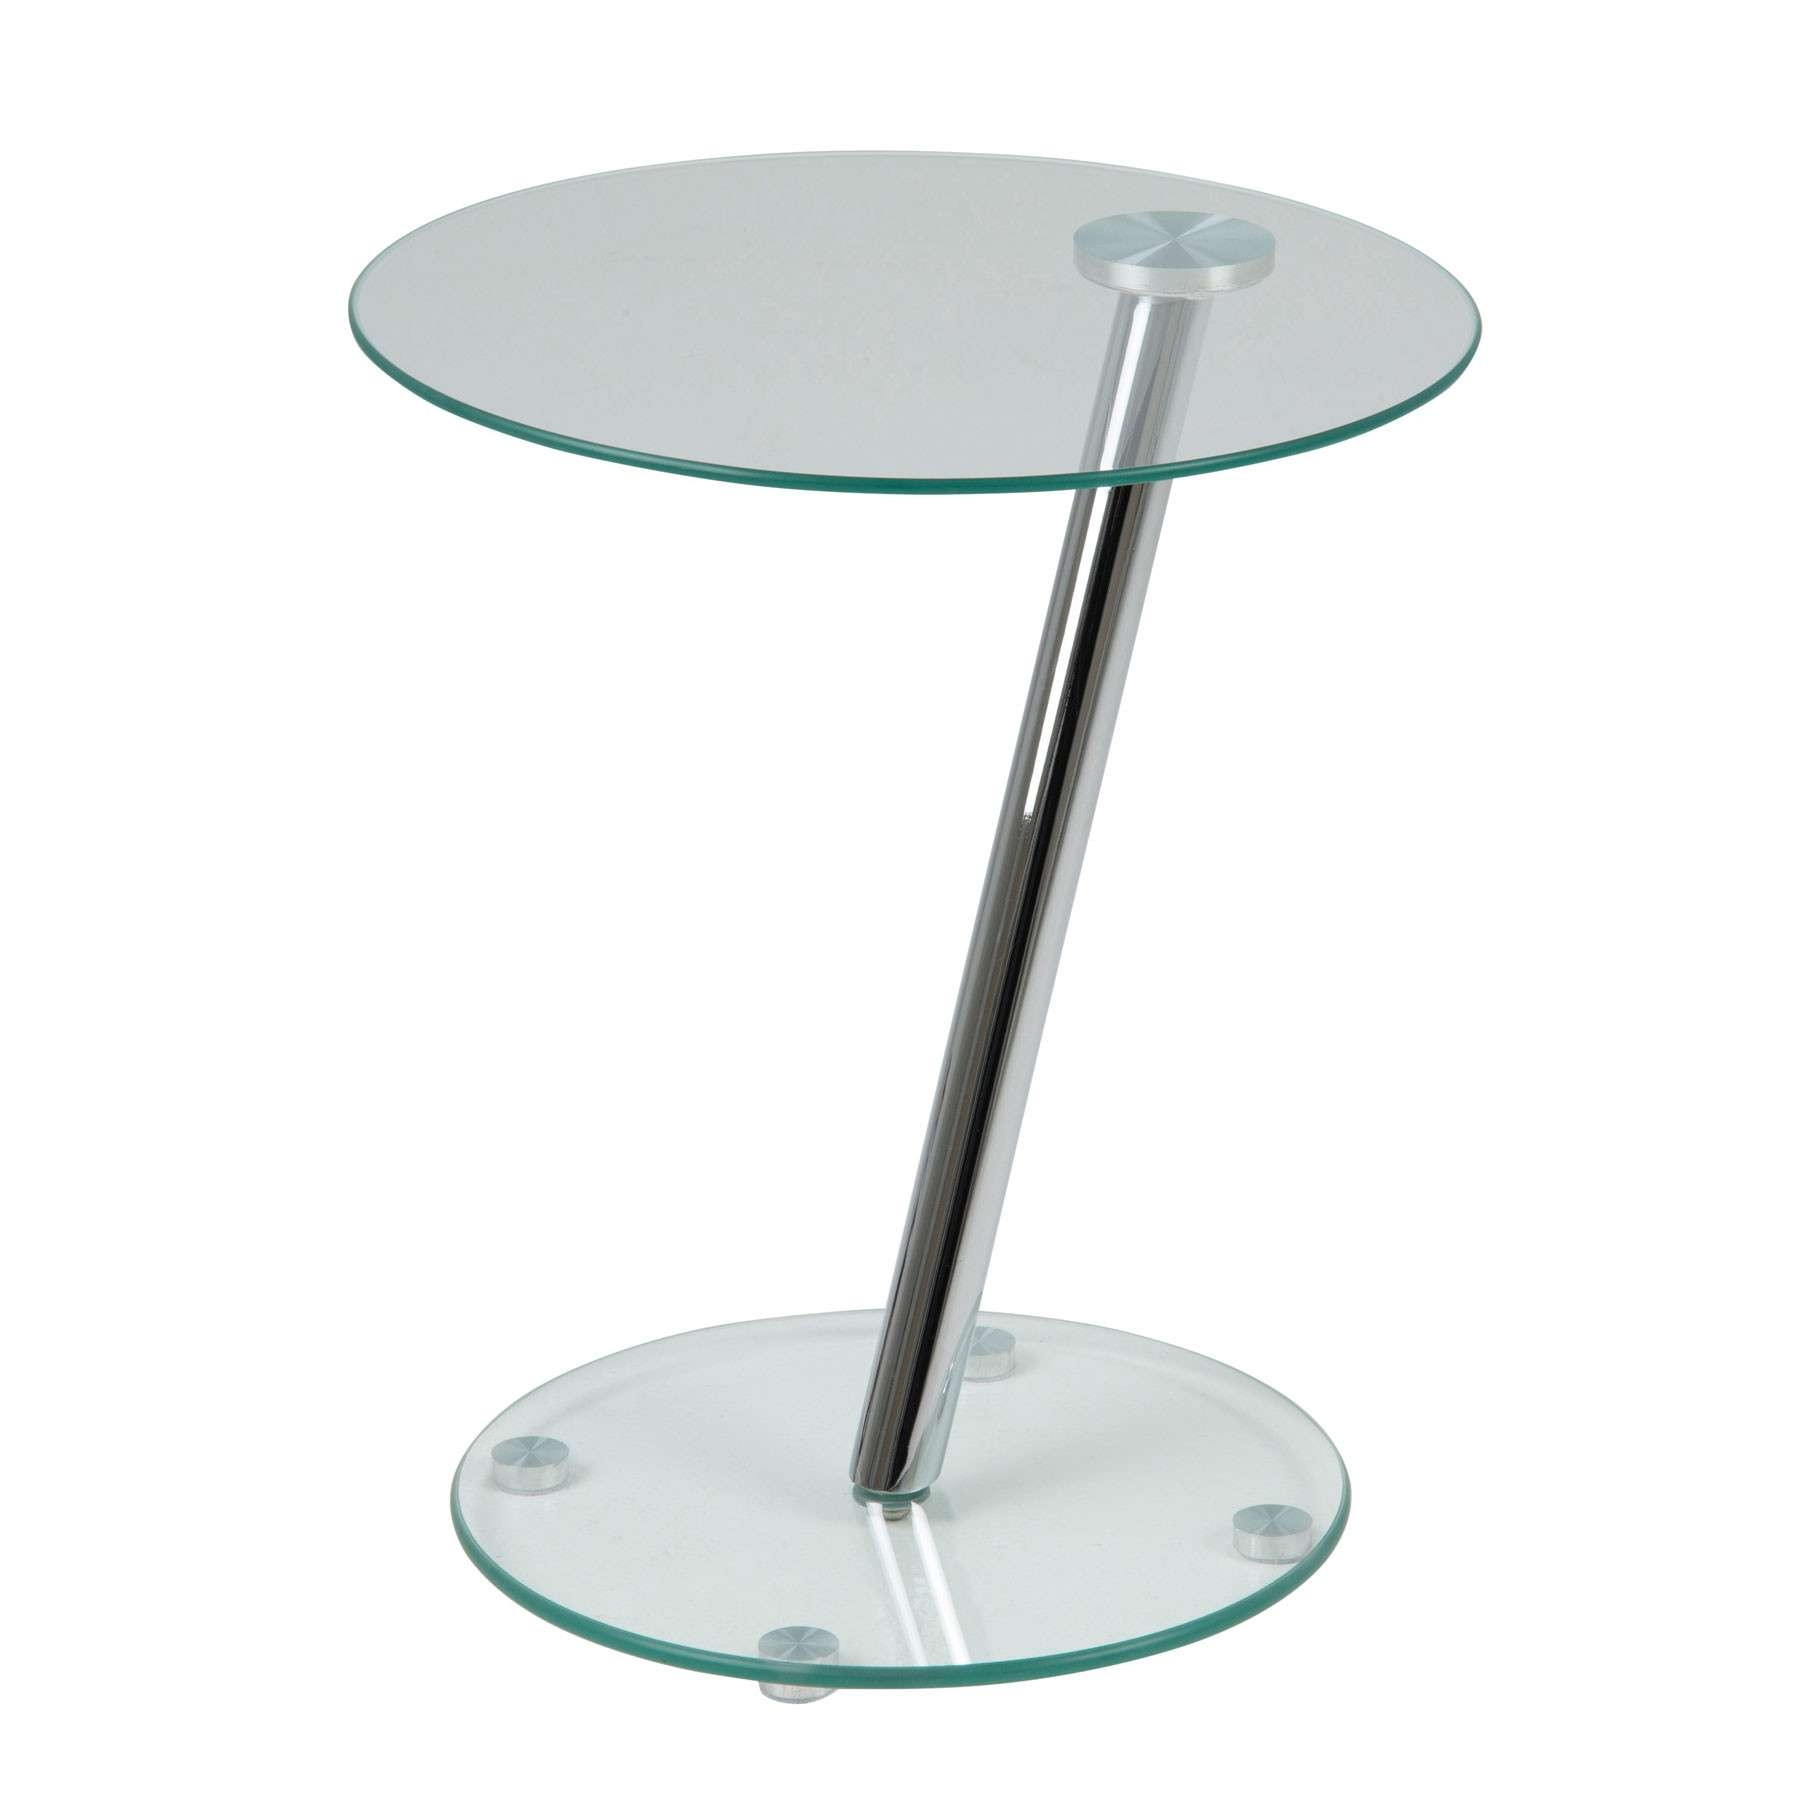 Coffee Tables : Round Glass Side Table Ikea Small Ebay Coffee For 2017 Circular Glass Coffee Tables (View 7 of 20)